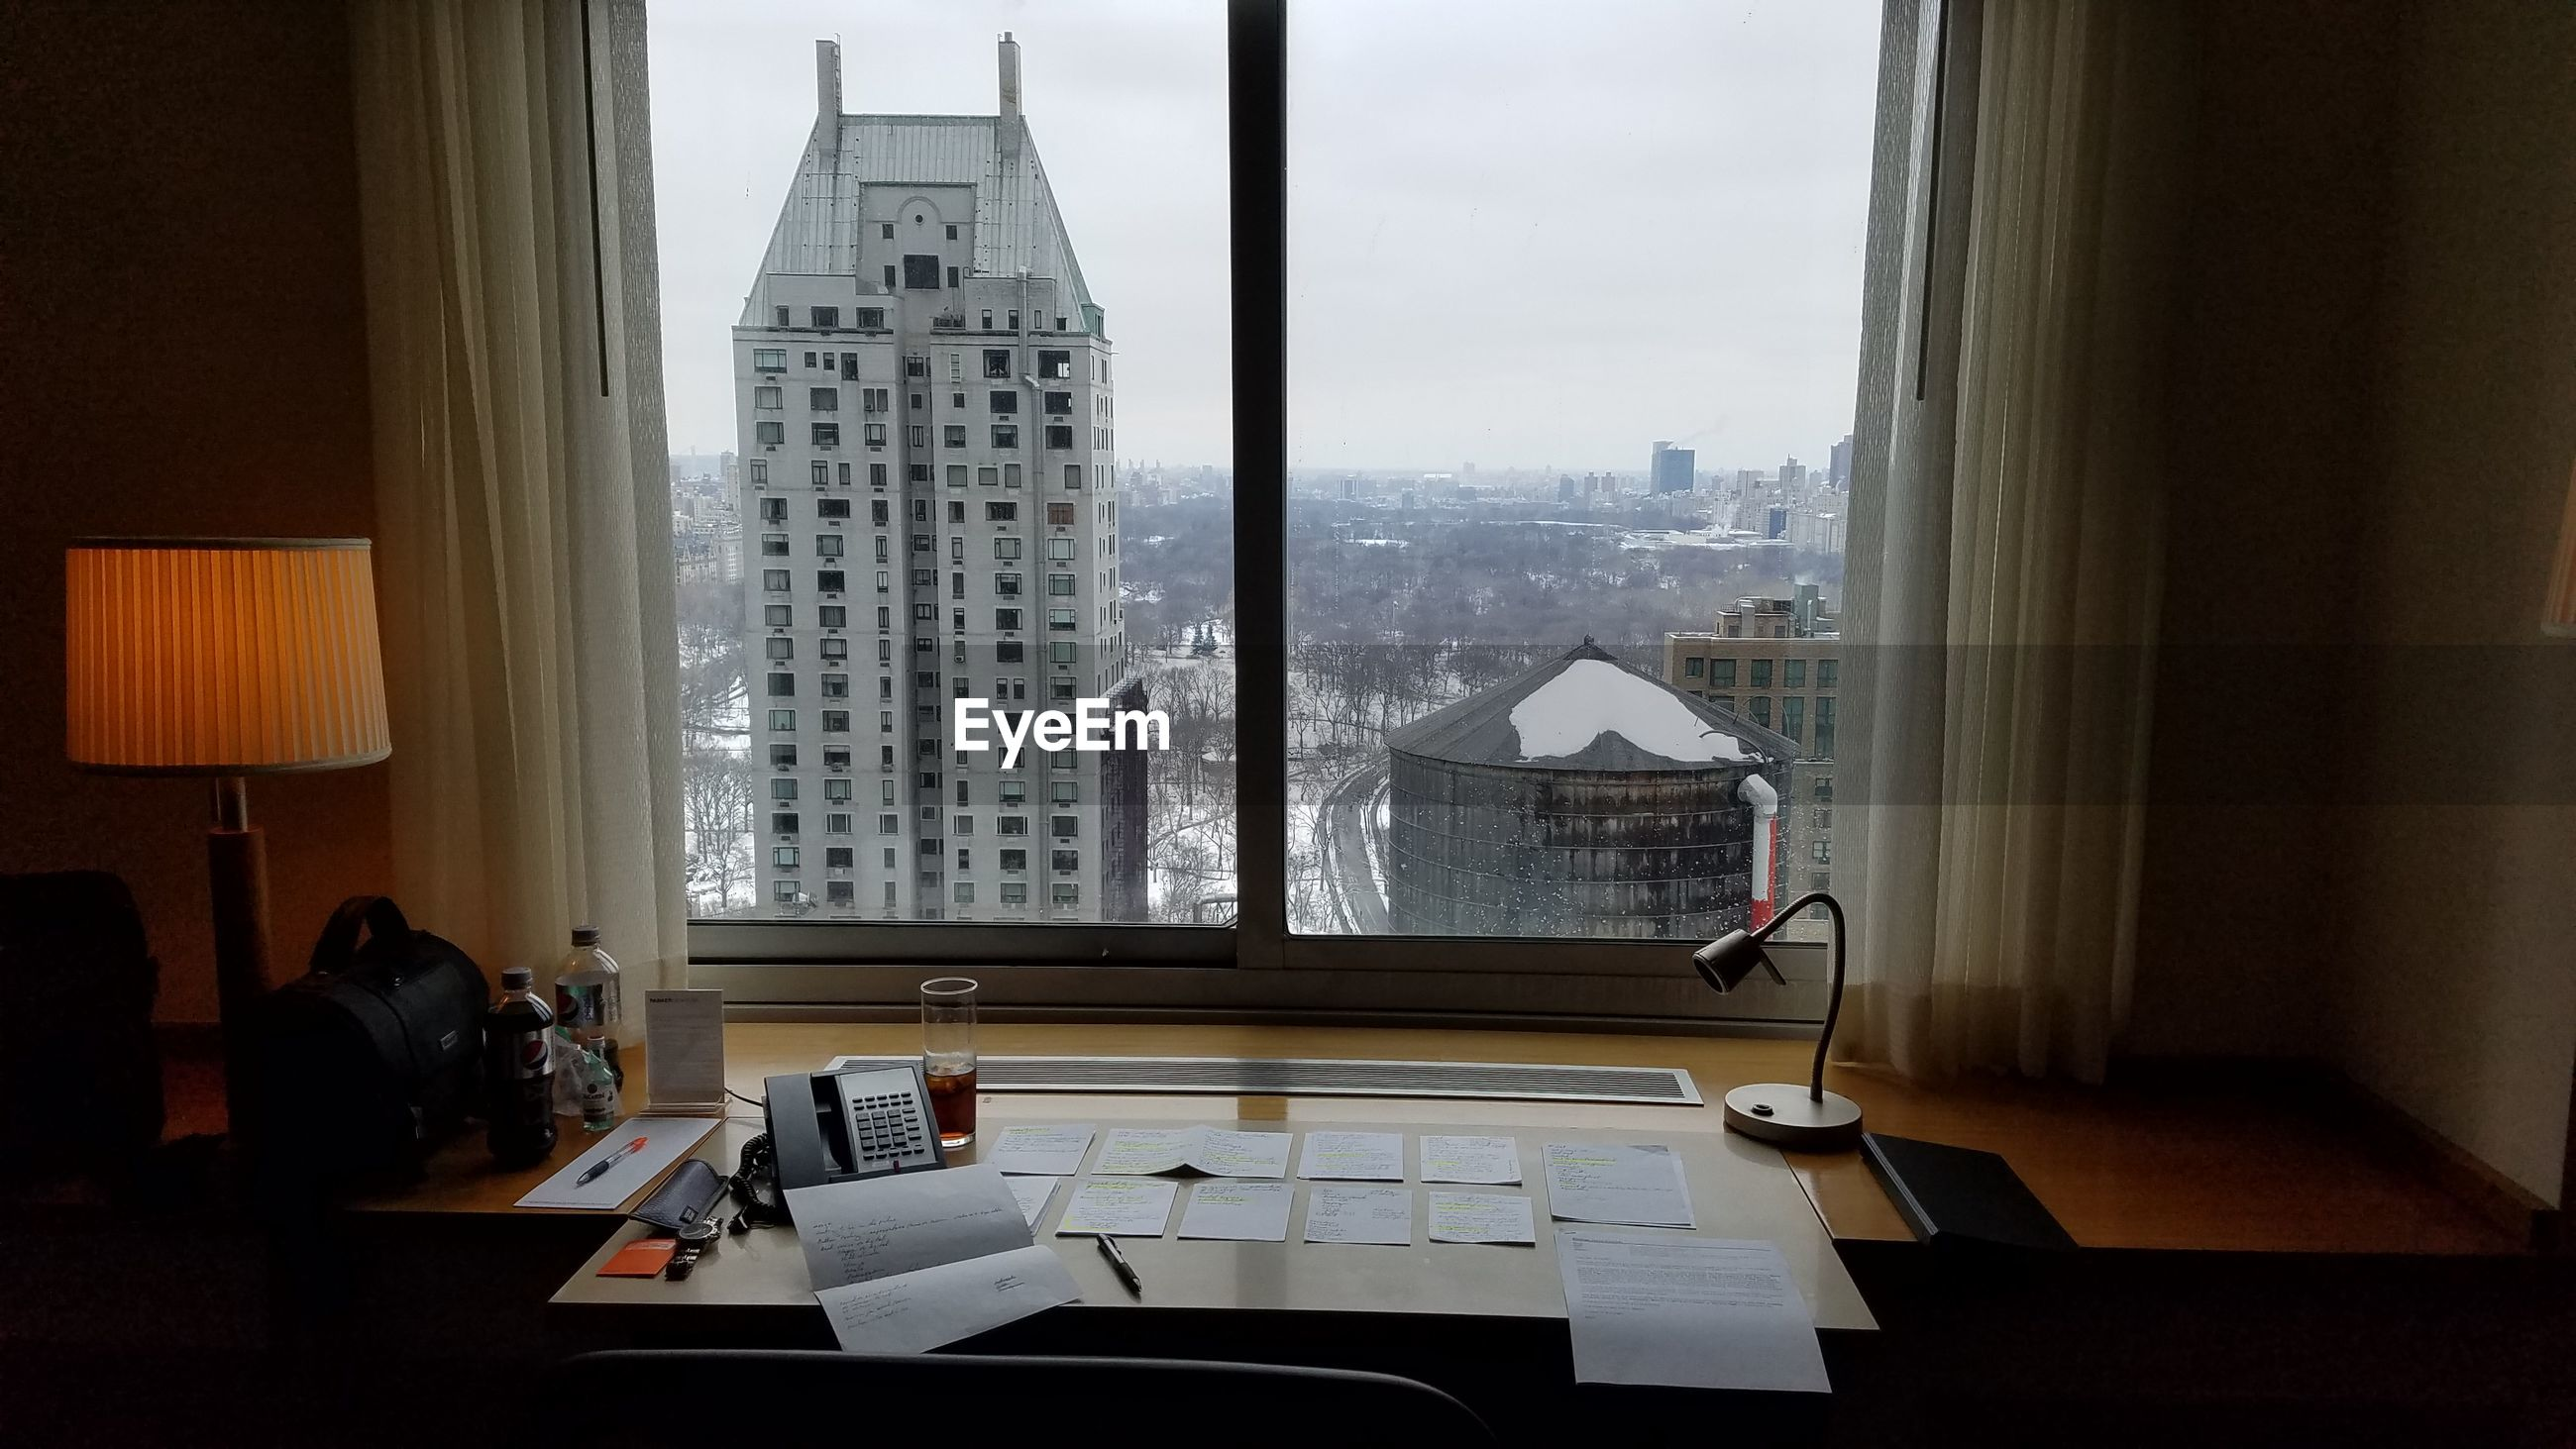 VIEW OF OFFICE BUILDINGS THROUGH WINDOW